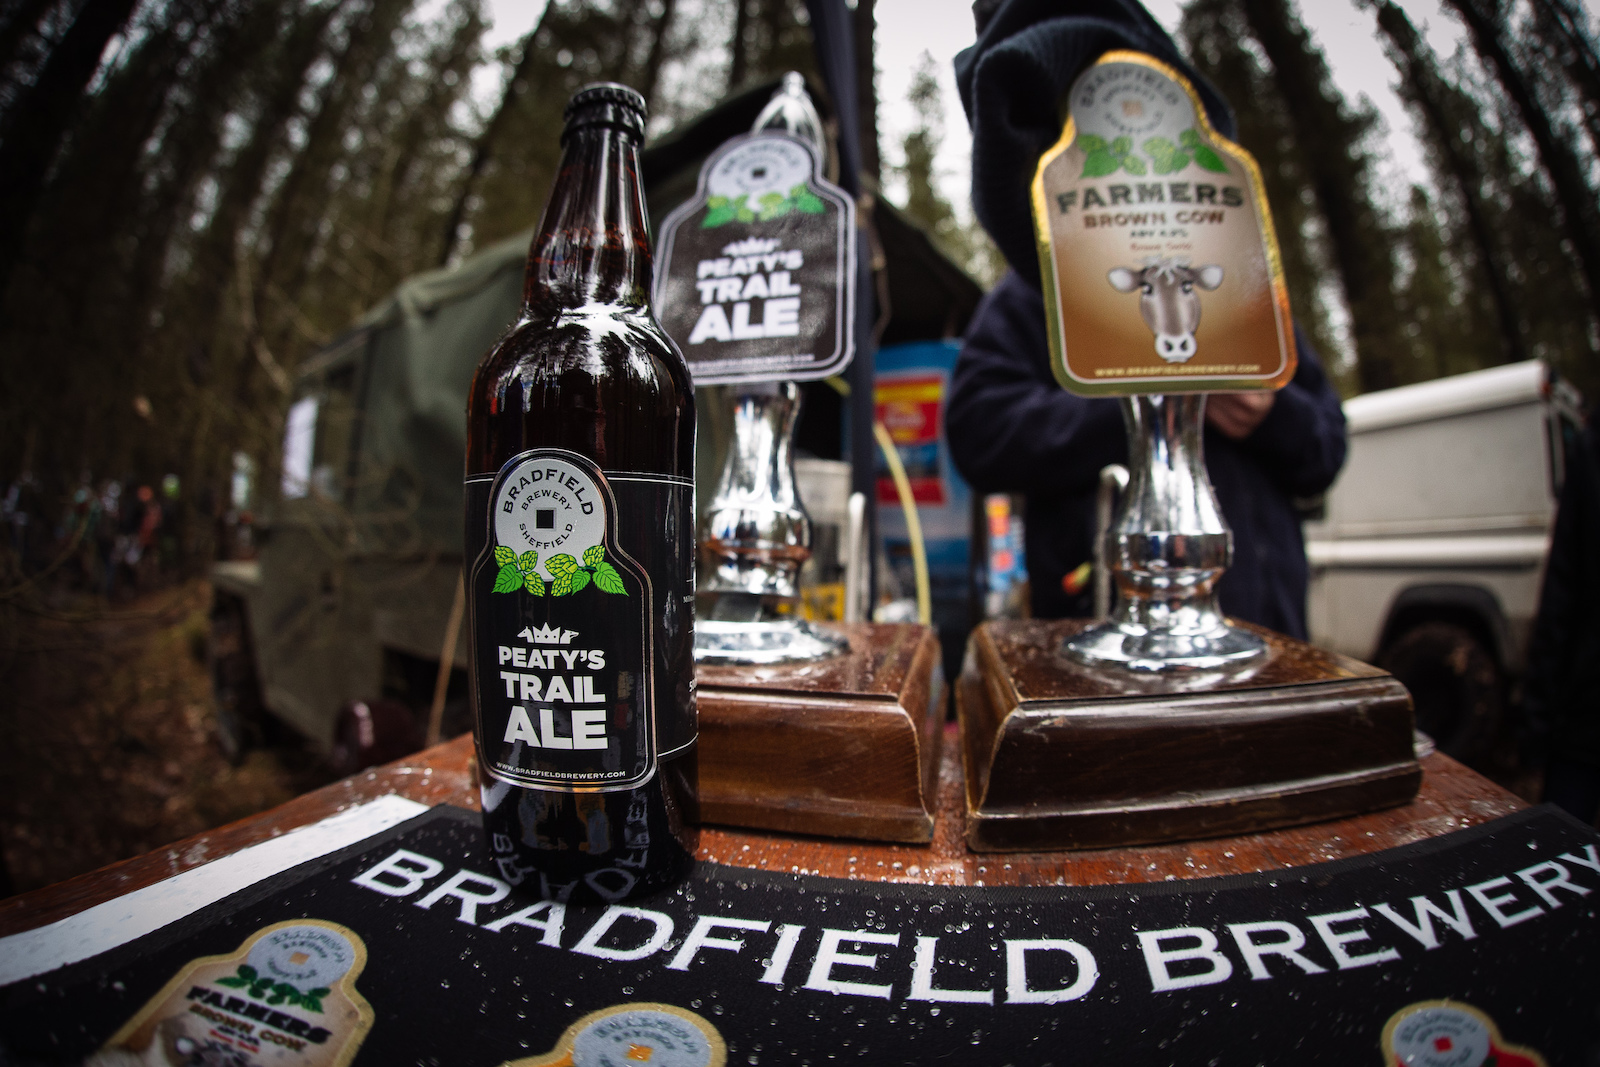 Bradfield Brewery were on site as usual to provide beverages to spectators as well as prizes to those on the podium. Better than champagne